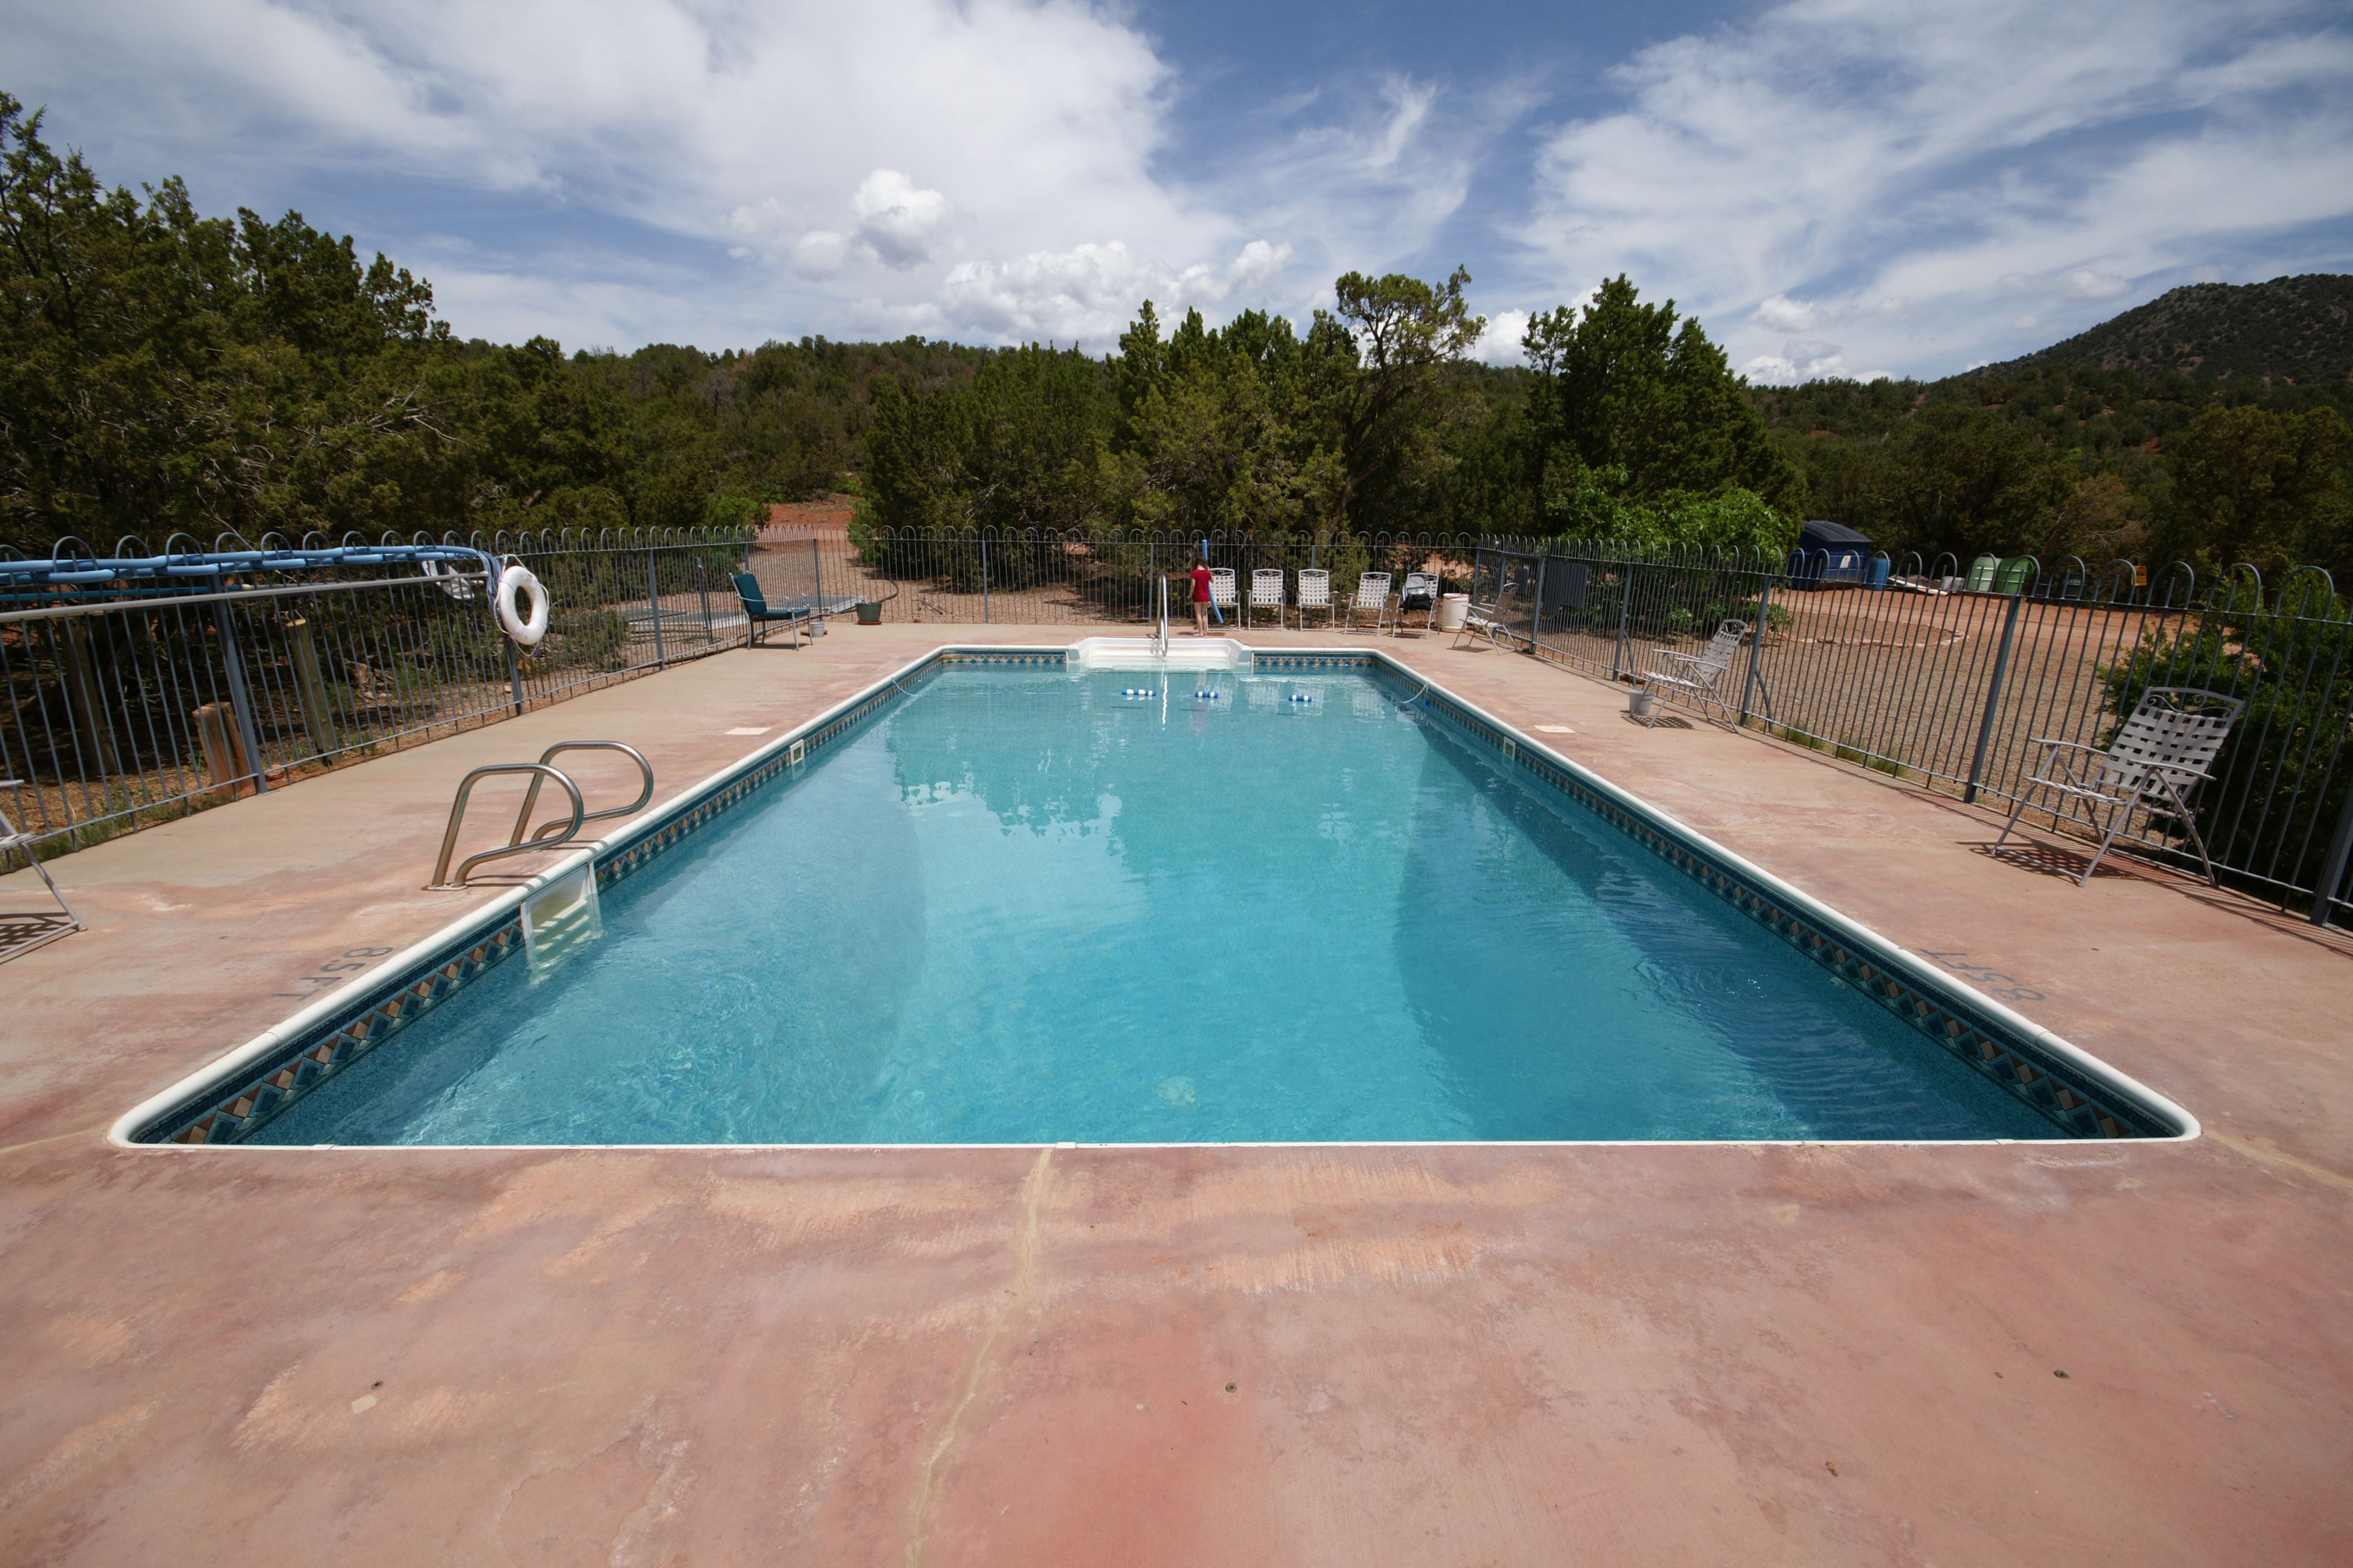 Indian Springs Ranch Campground